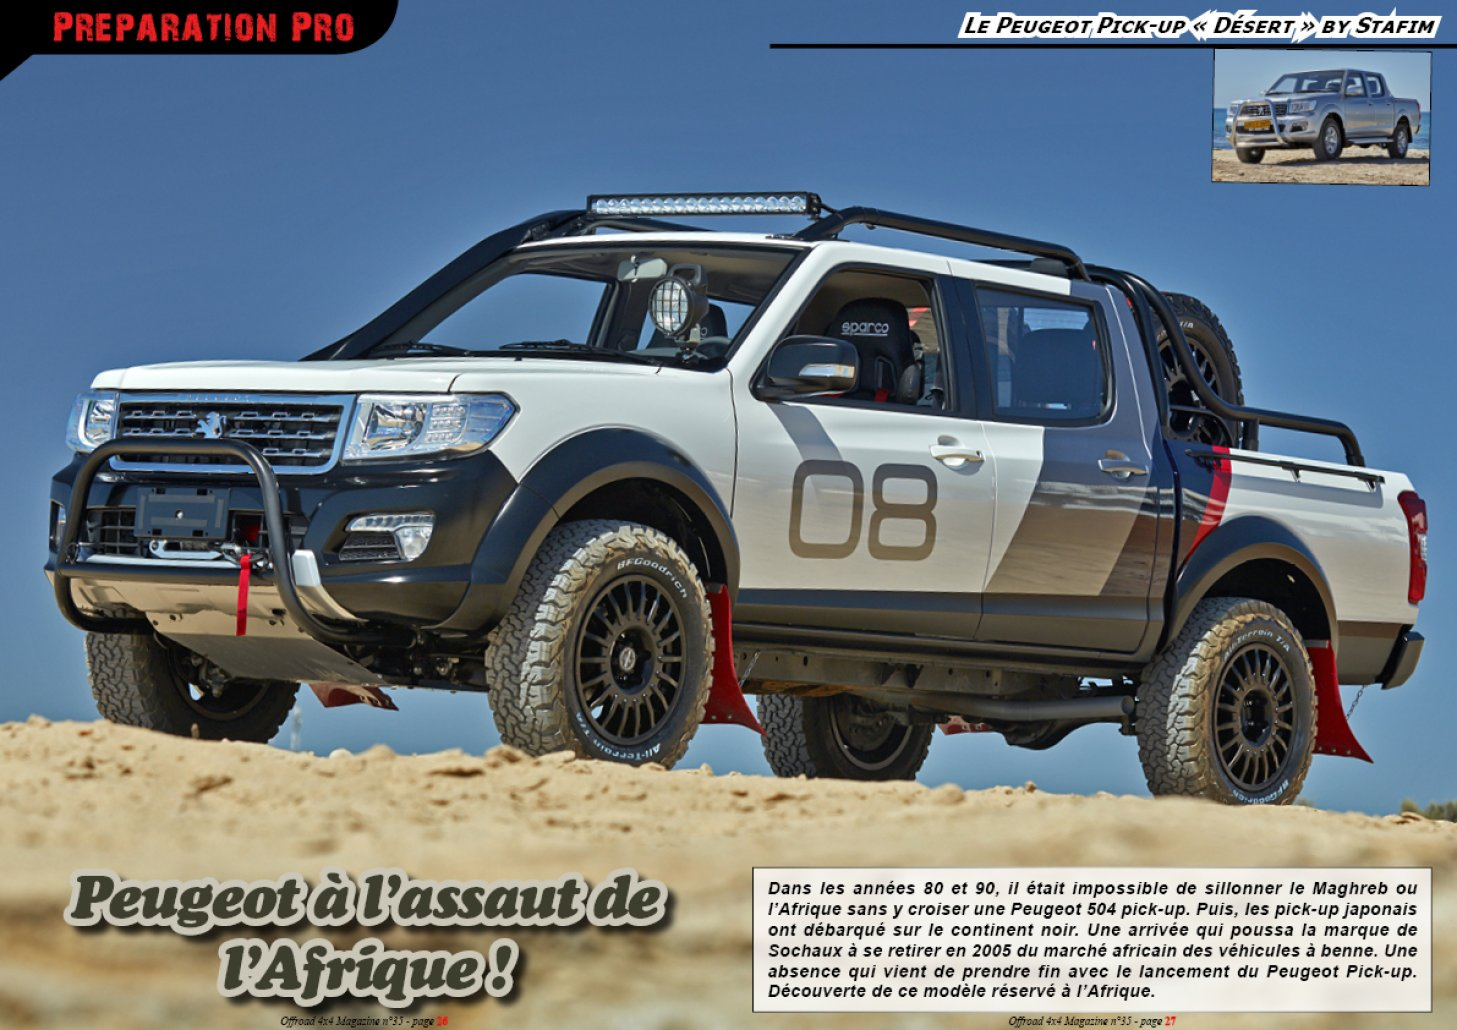 Le Peugeot Pick-up « Désert » by Stafim